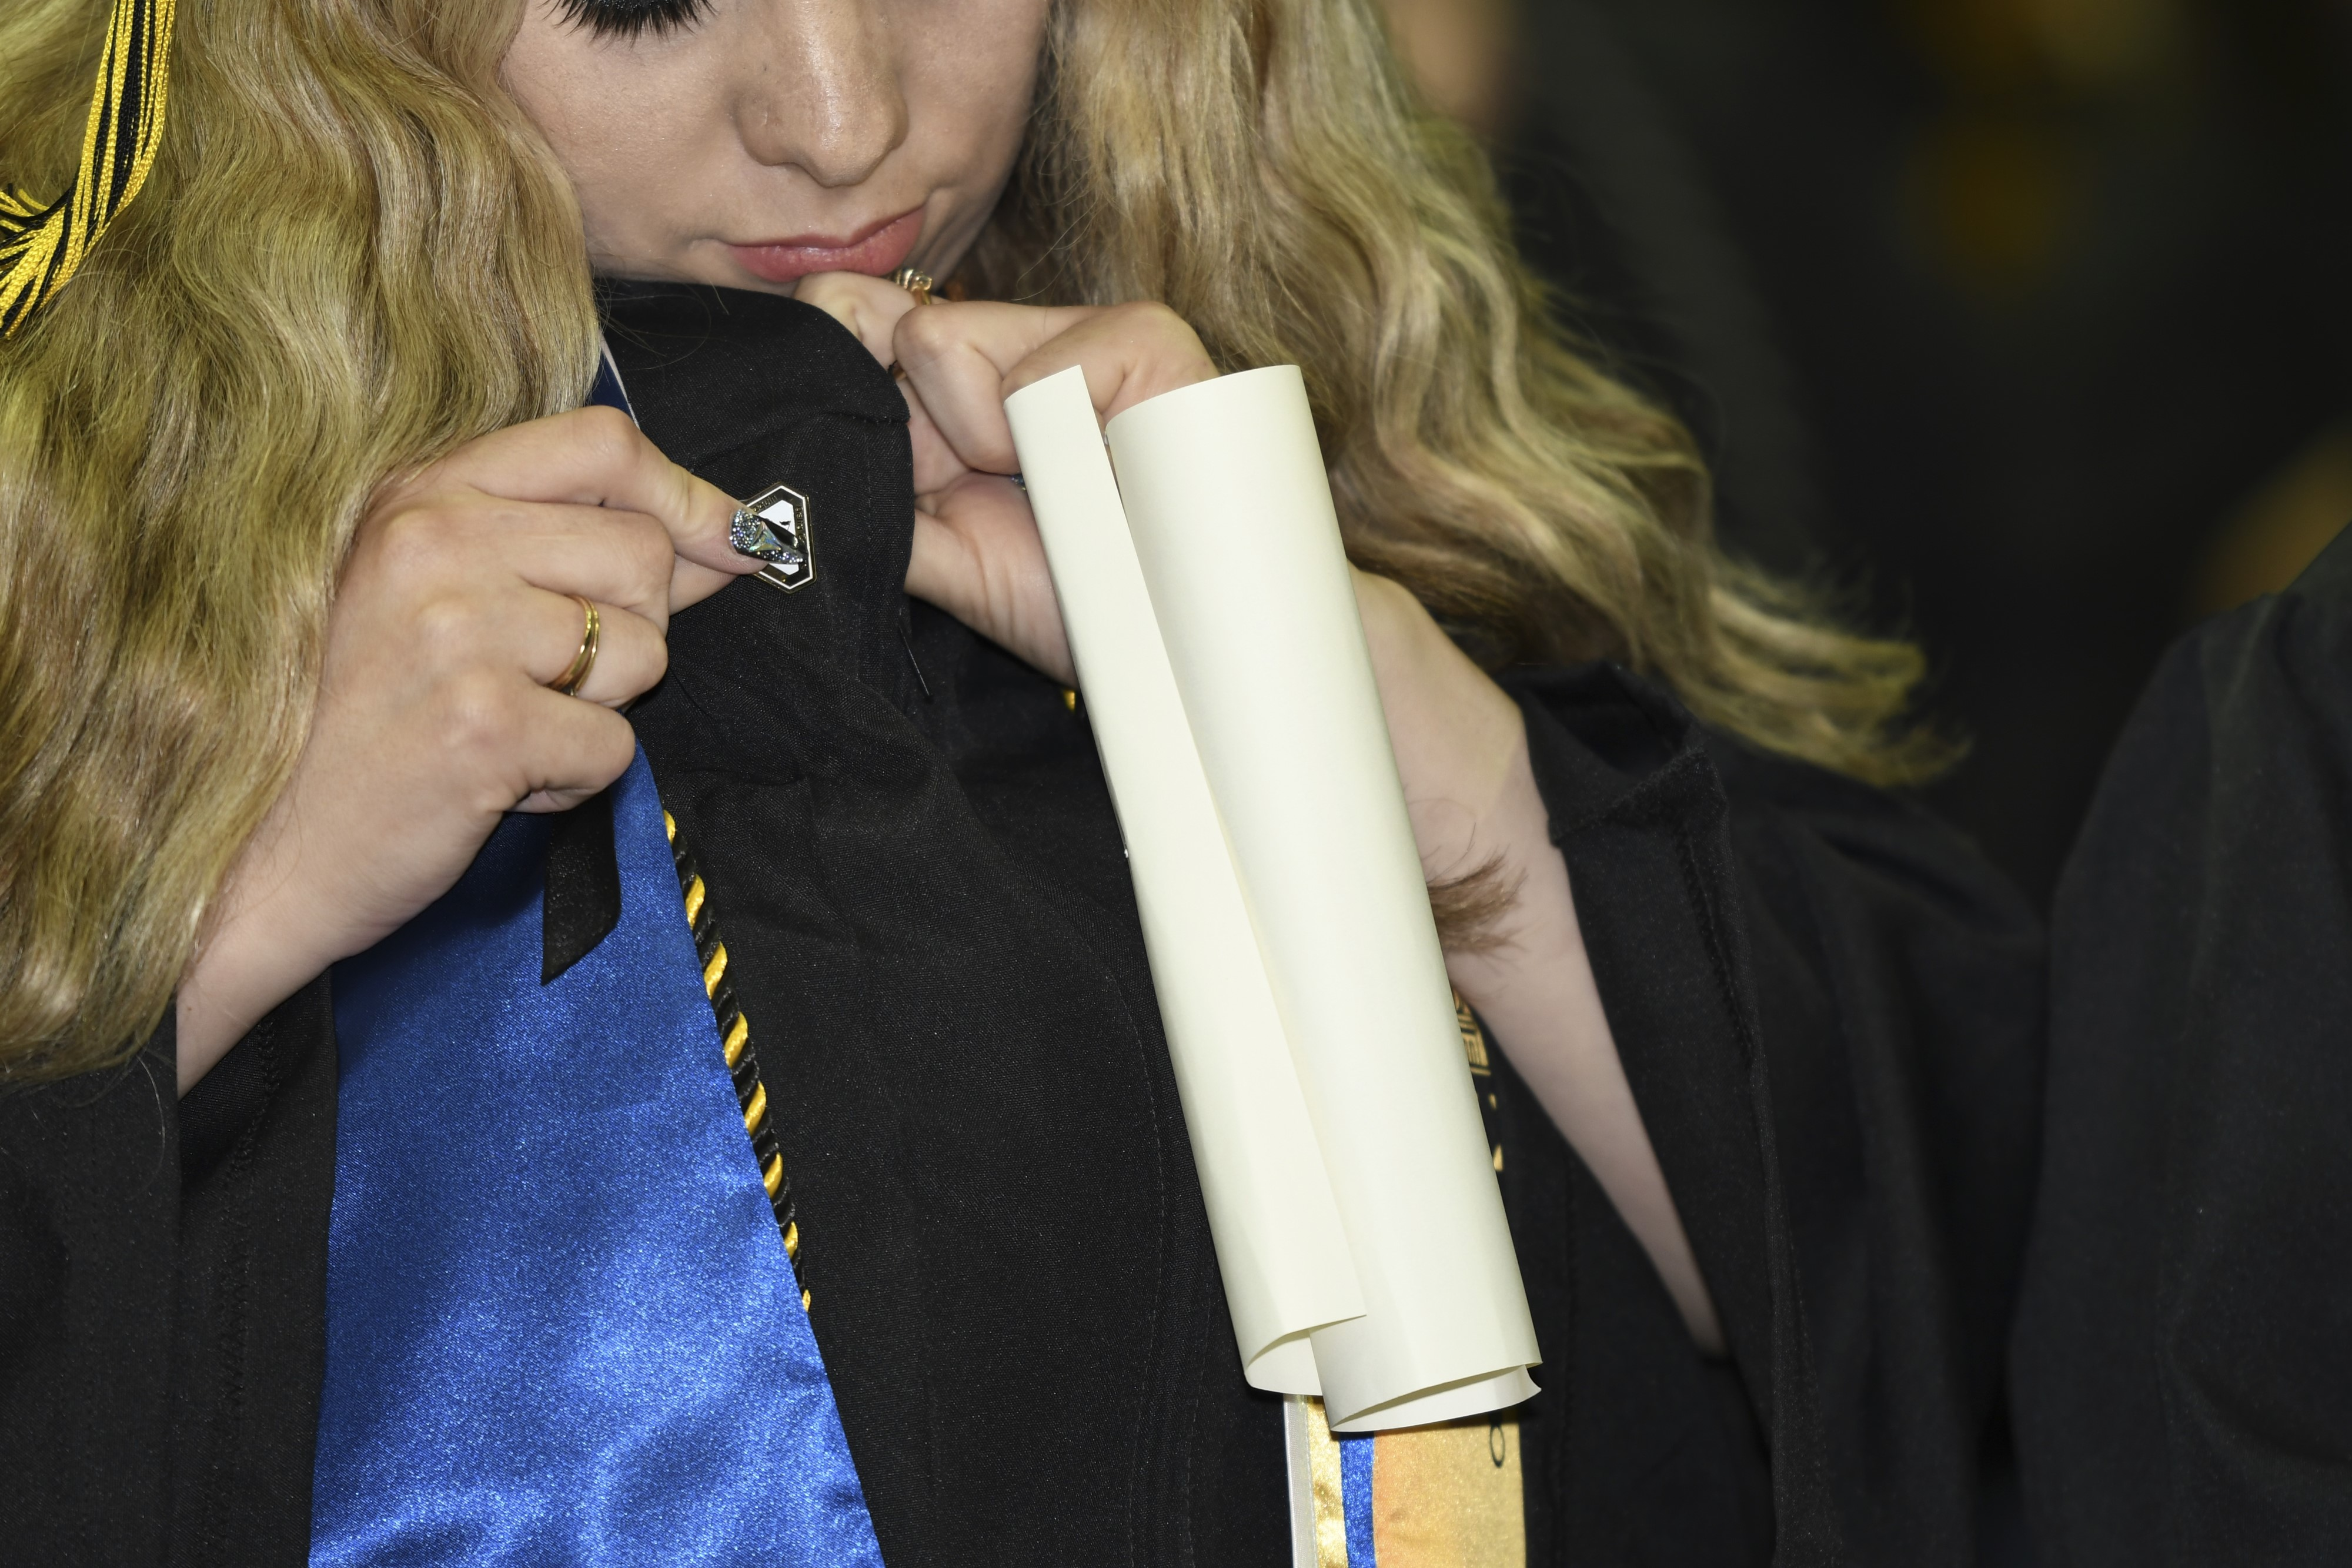 A new San Joaquin Delta College graduate puts on her alumni pin during the College's Commencement ceremony.